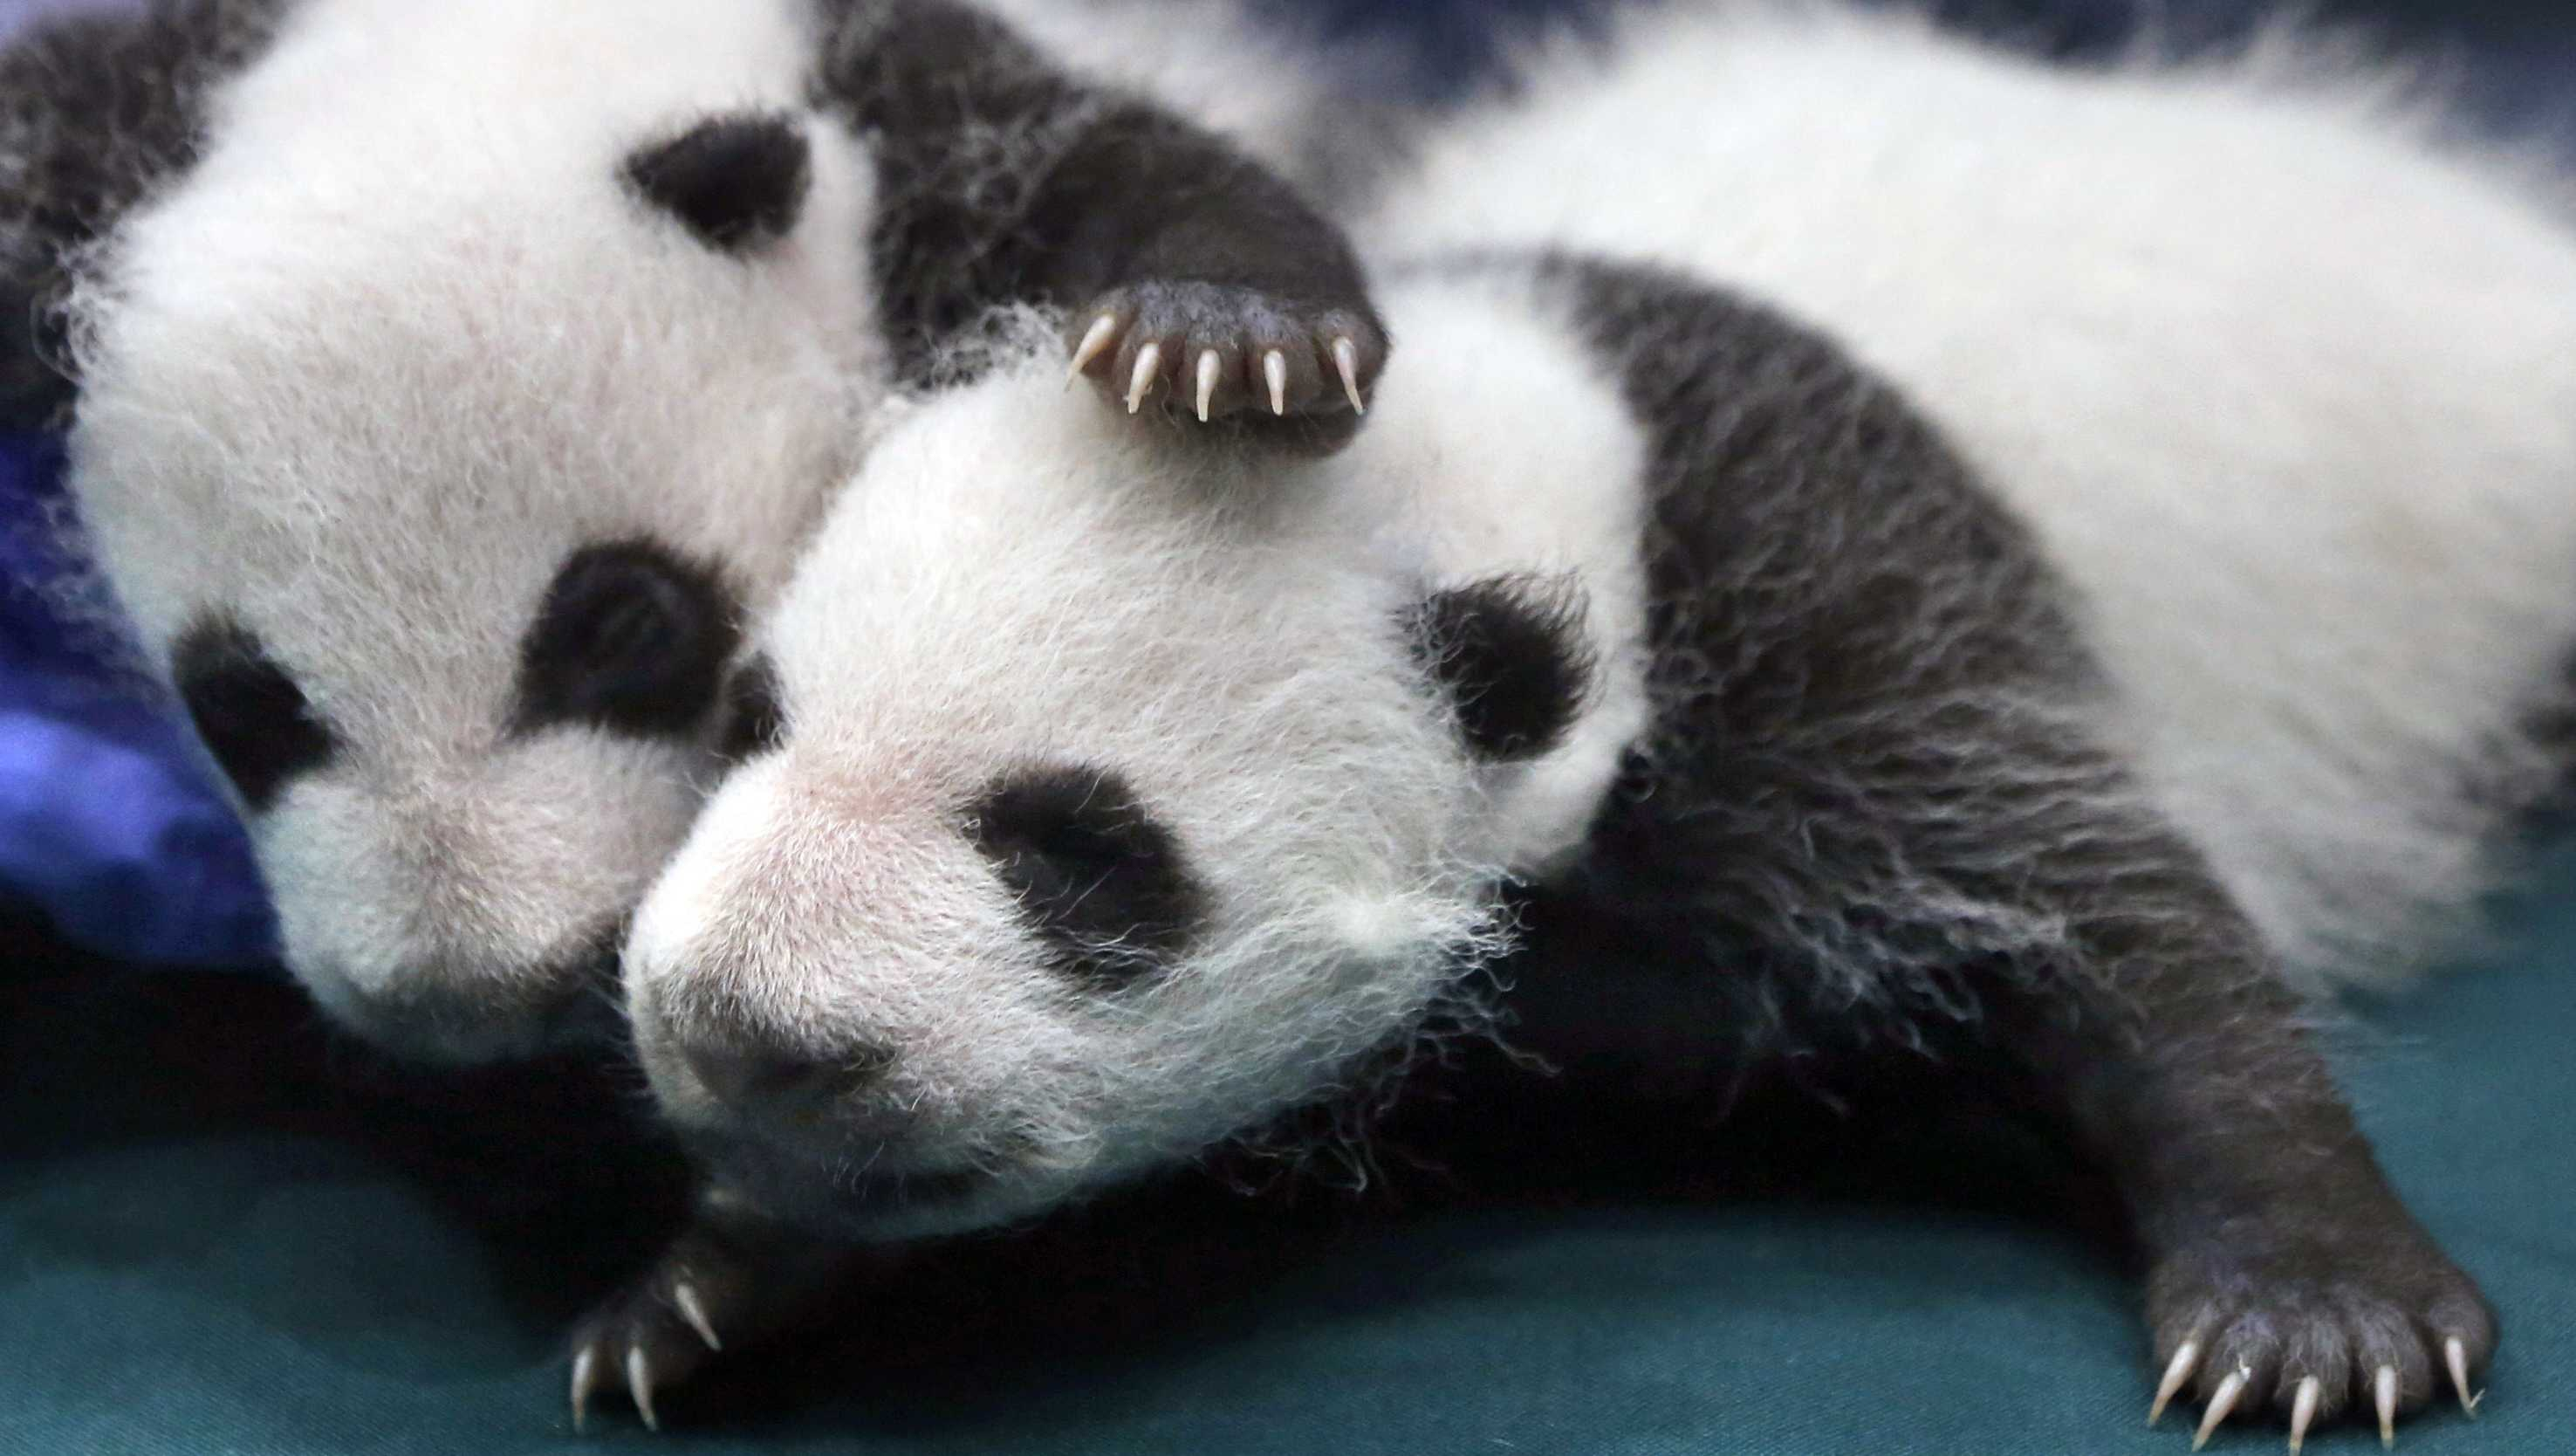 "Two of the one month old Panda triples receive a body check at the Chimelong Safari Park in Guangzhou in south China's Guangdong province. The giant panda, one of the symbols of China, is off the endangered list thanks to aggressive conservation efforts. The International Union for Conservation of Nature said in a report released Sunday, Sept. 4, 2016 that the panda is now classified as ""vulnerable"" instead of ""endangered,"" reflecting its growing numbers in the wild in southern China."